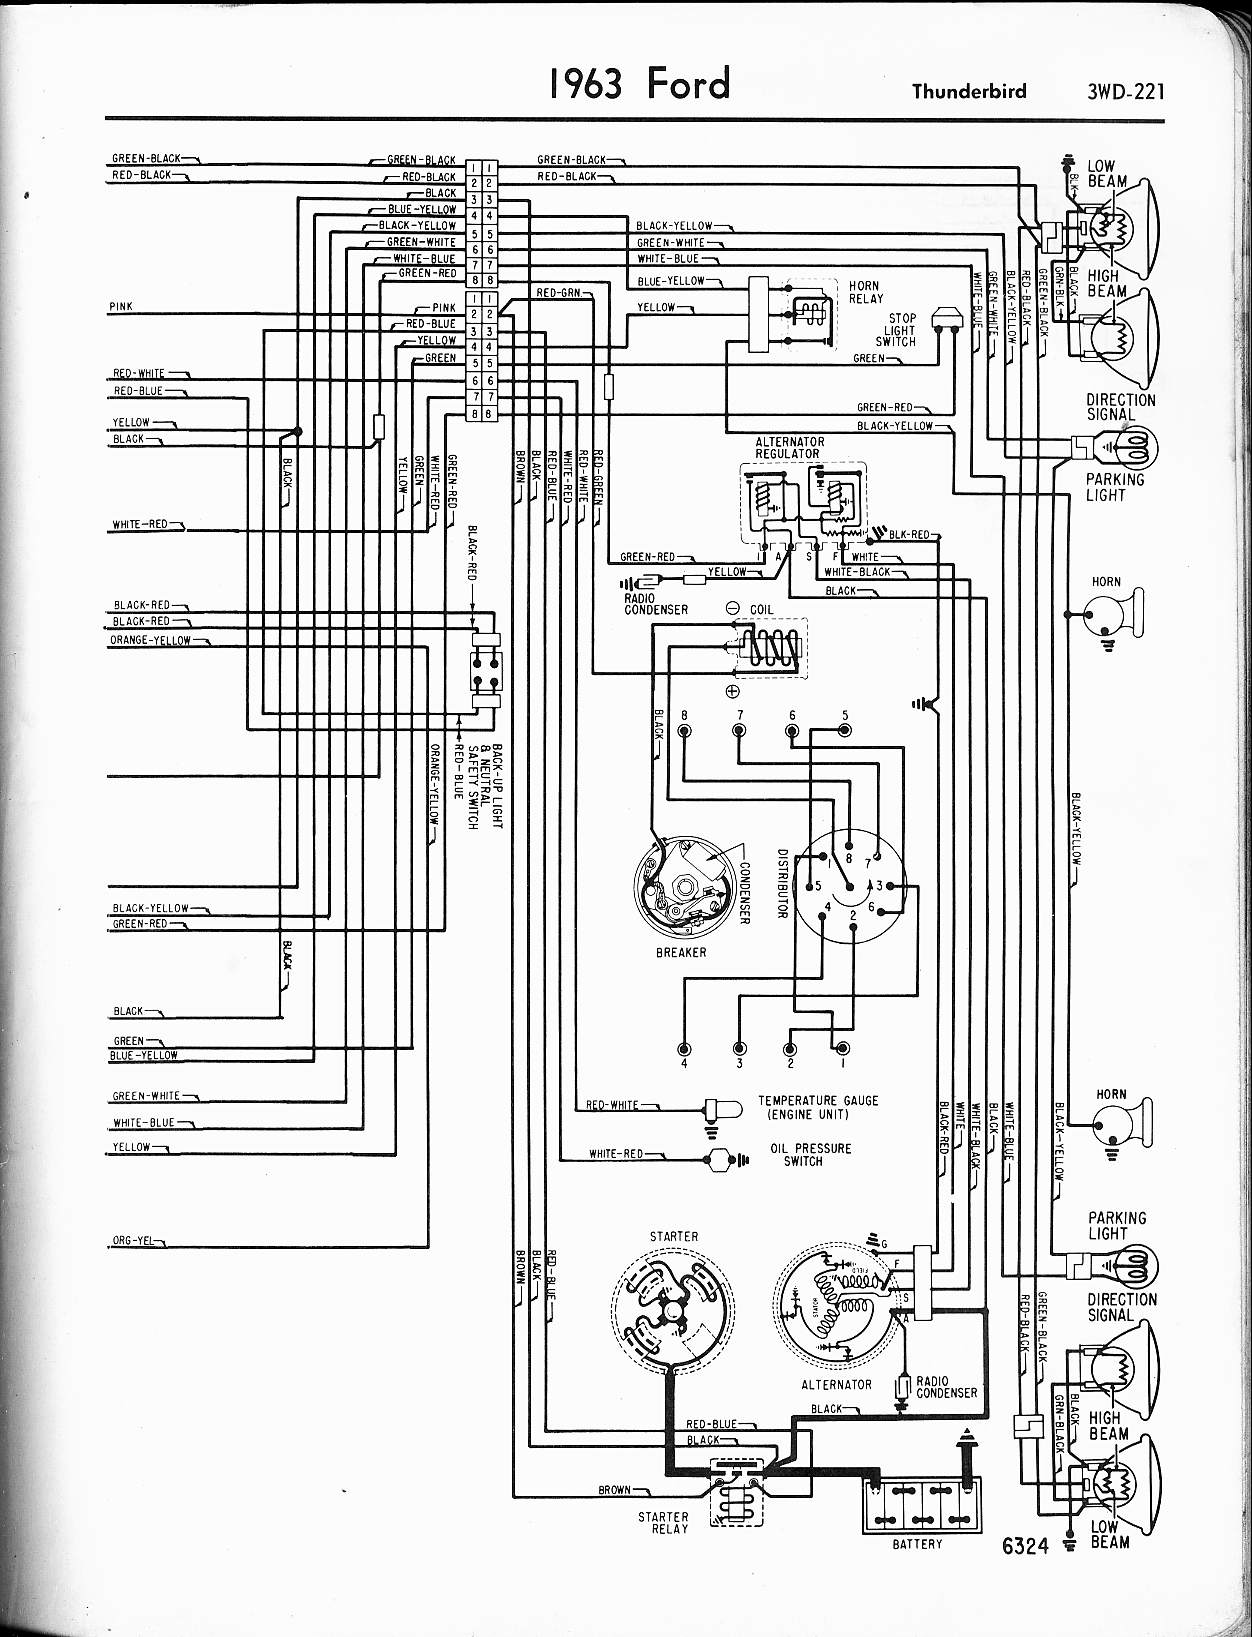 MWire5765 221 1967 thunderbird turn signal diagram wiring schematic on 1967 Cub Cadet 100 at aneh.co